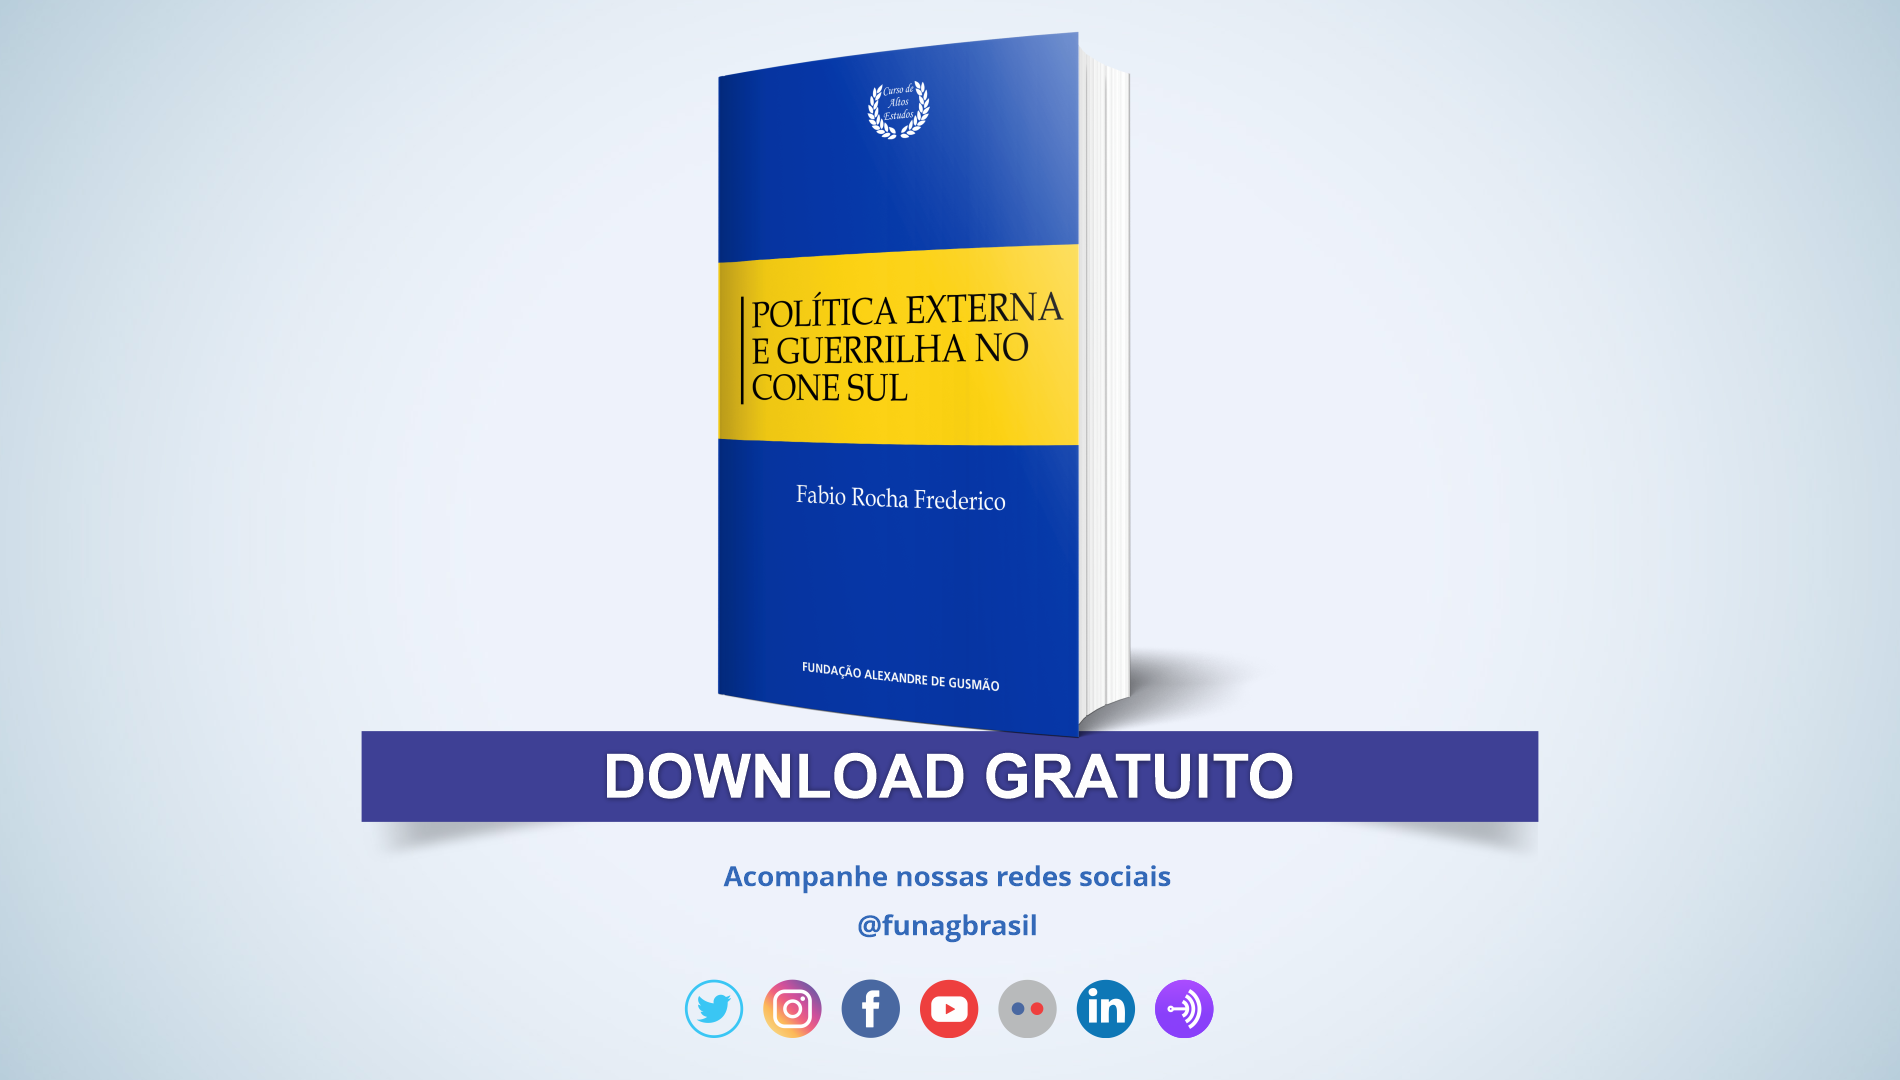 FUNAG publishes book on foreign policy and guerrilla in the Southern Cone